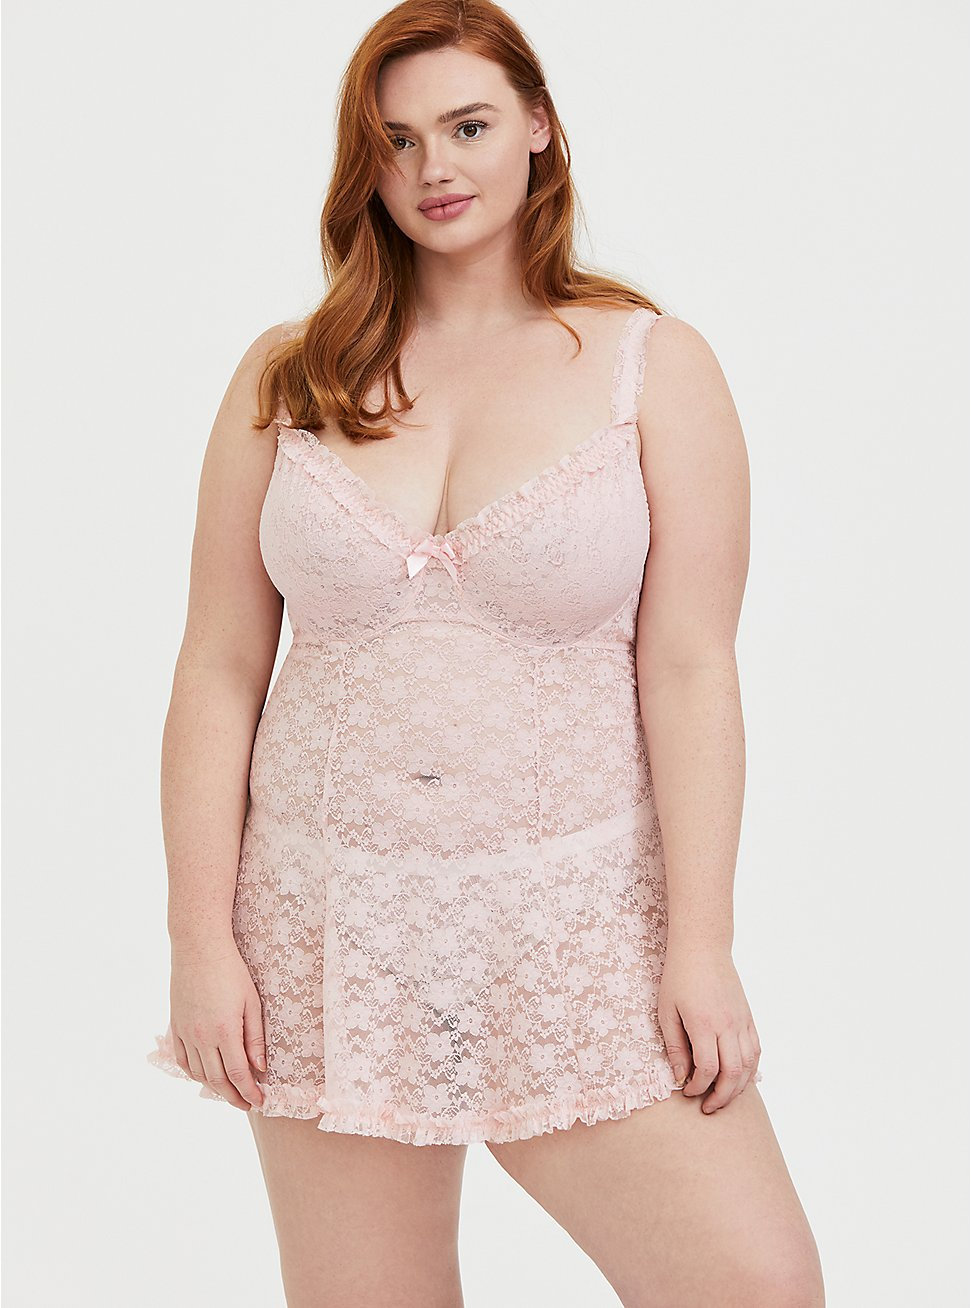 Light Pink Lace Underwire Babydoll, , hi-res